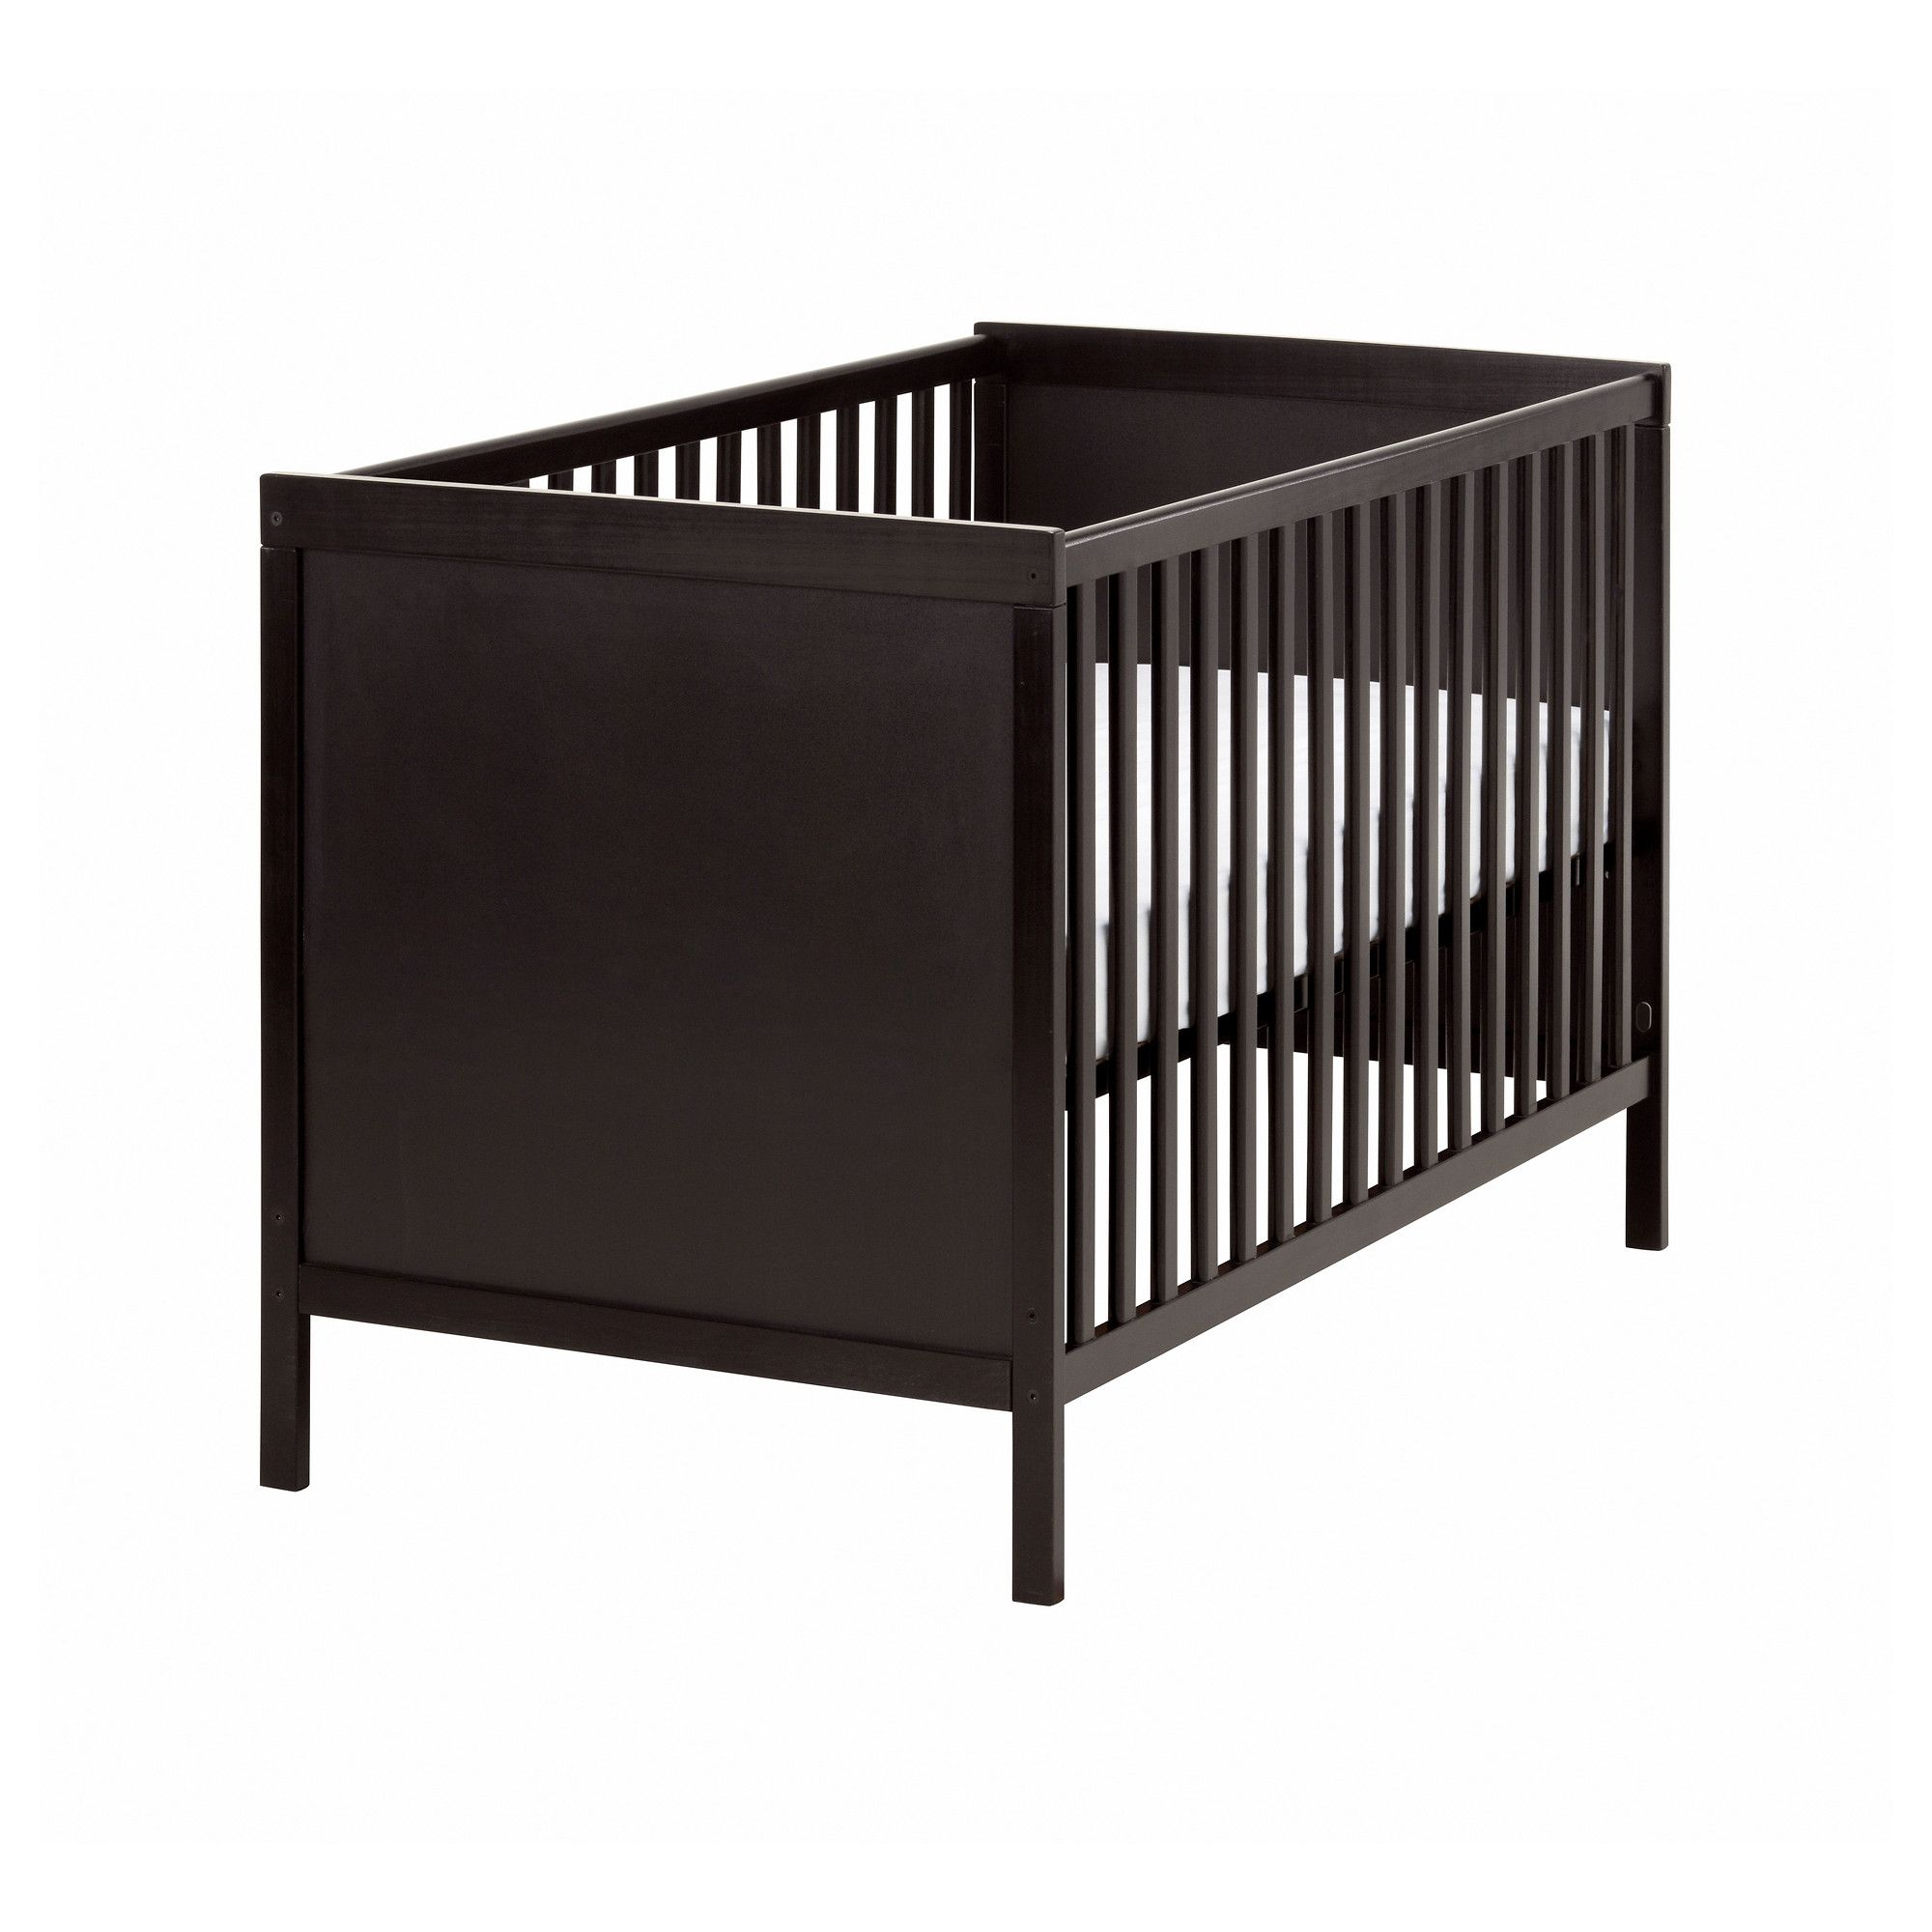 Muebles Para Guarderia Sundvik Cuna Ikea For My Kids Pinterest Bebe Y Niños